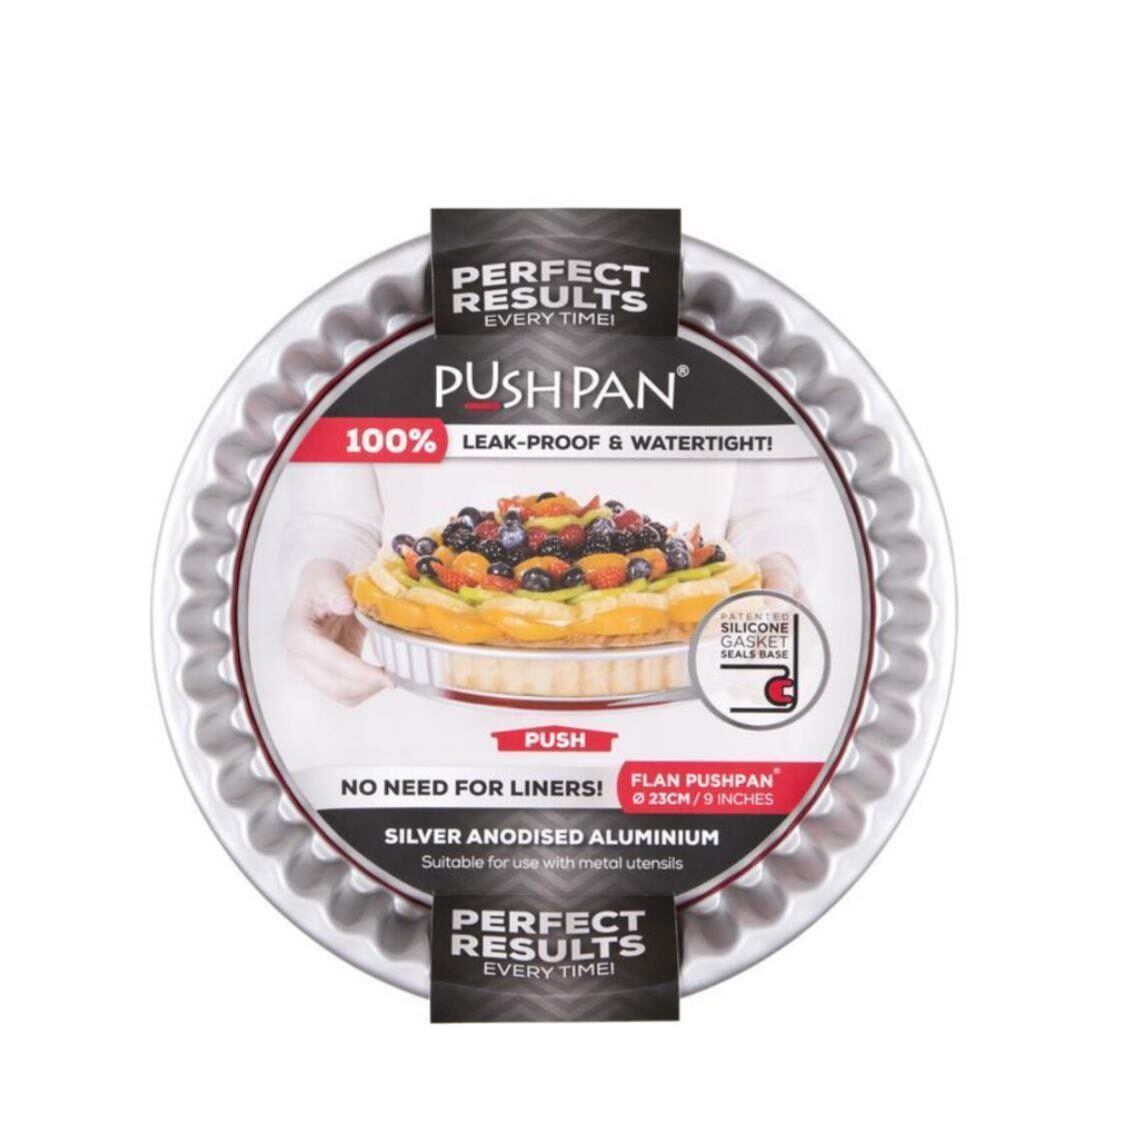 Pushpan Round Flan And Quiche Pan 23cm